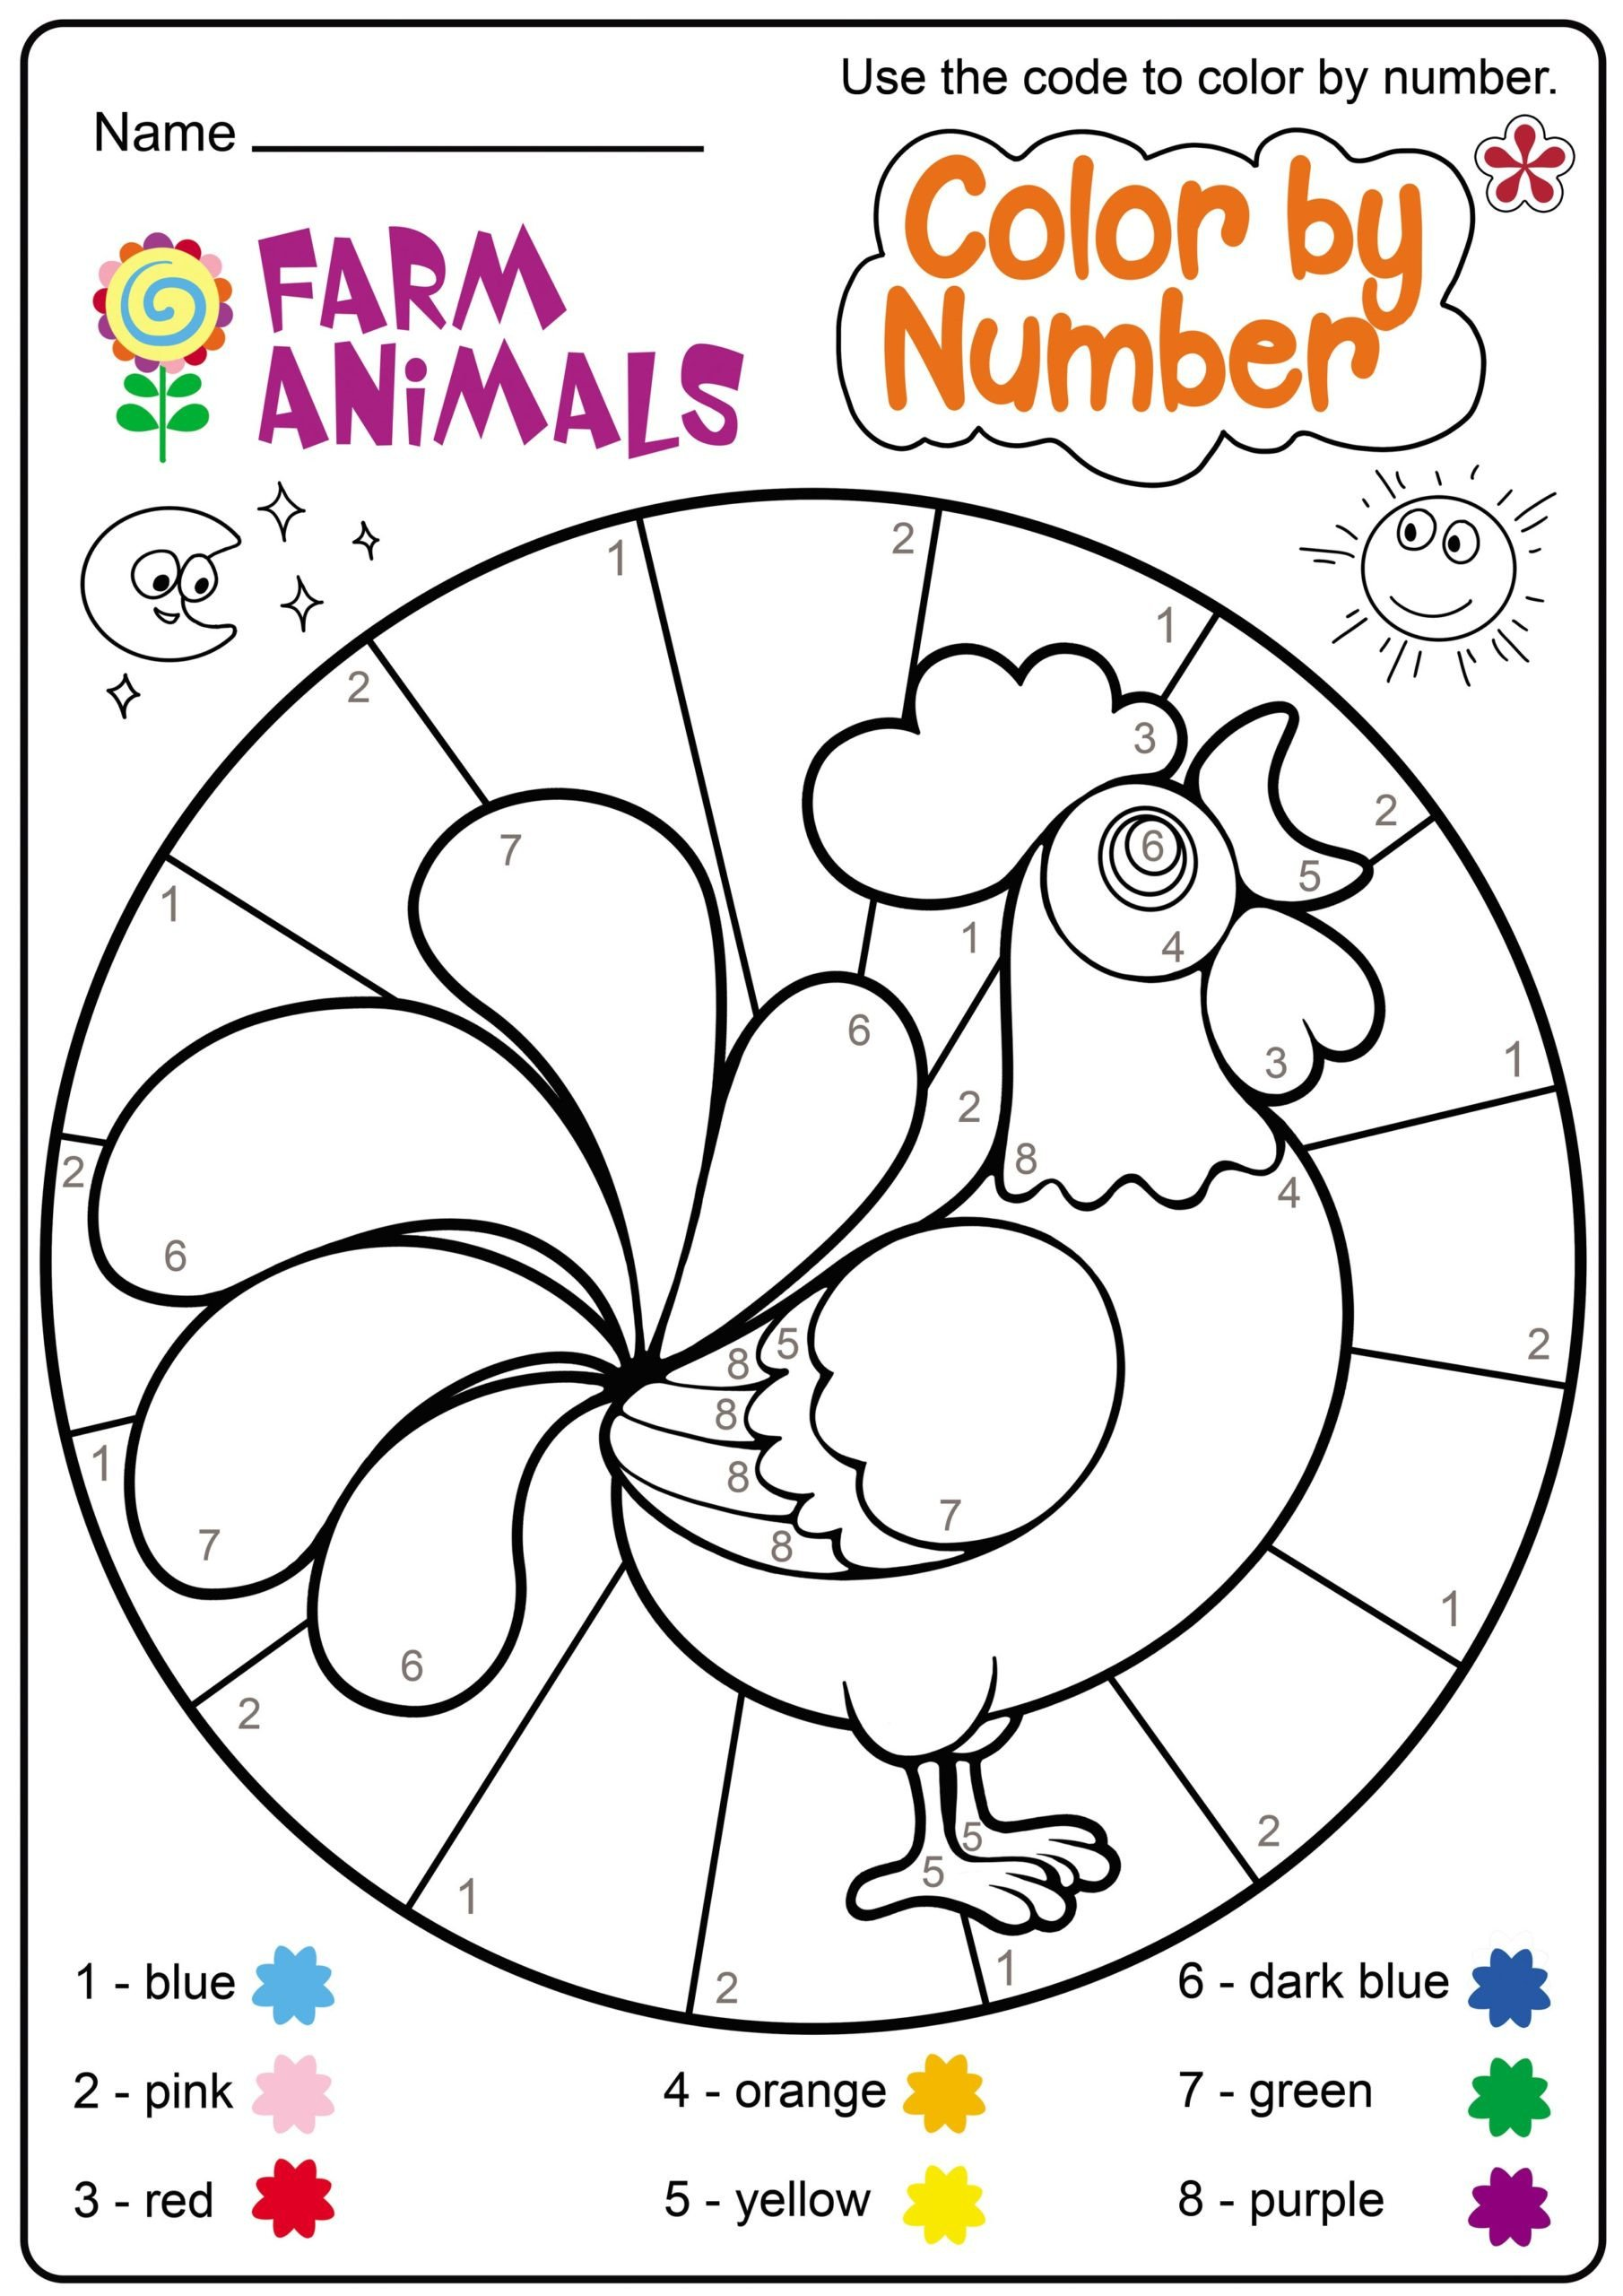 farm animal worksheet for free printable worksheets and zoo themed math color by number solve problem show steps problems toddler learning activities facts about multiplication scaled